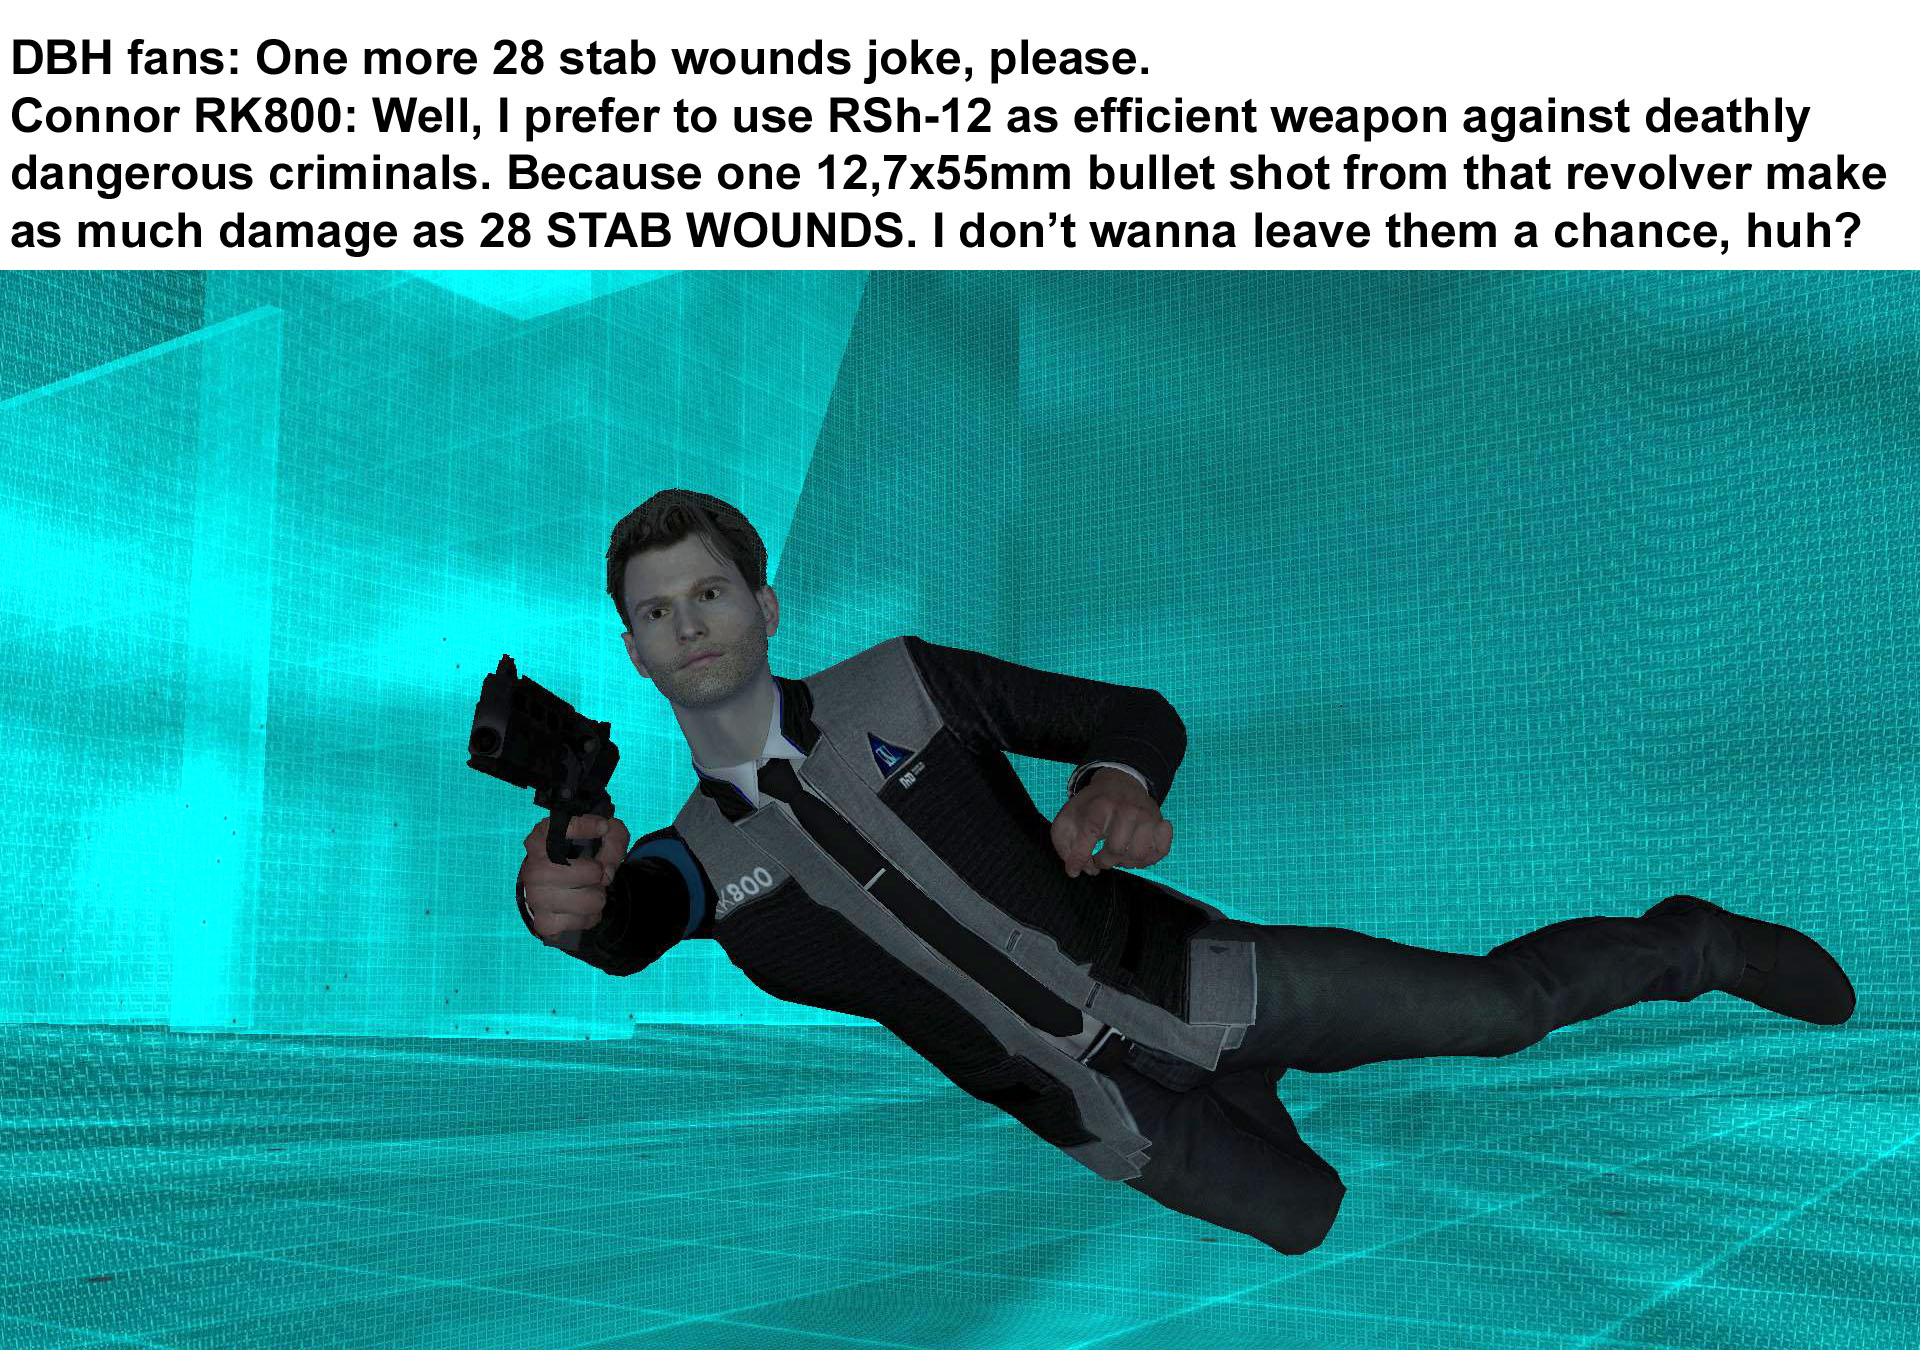 Connor 28 Stab Wounds Meme - Meme Painted